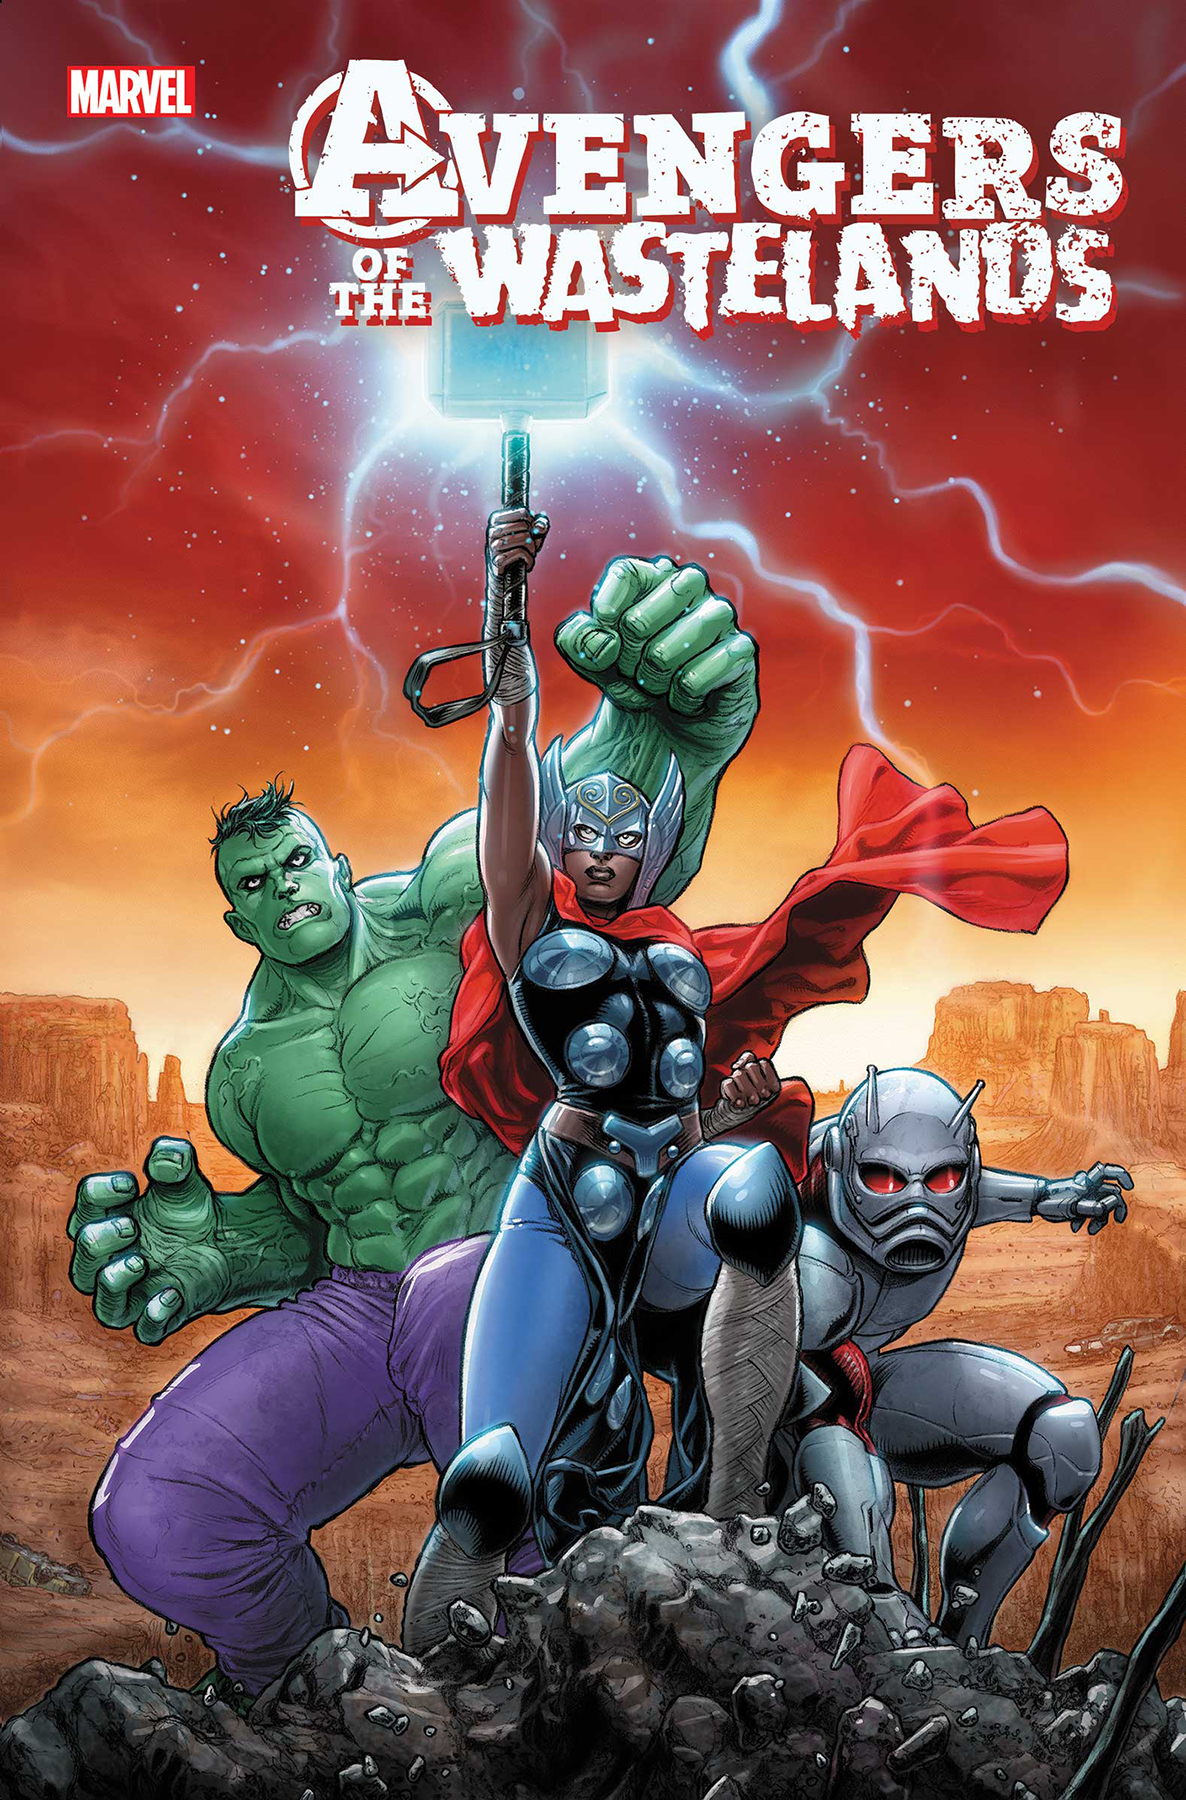 AVENGERS OF THE WASTELANDS #1 (OF 5)